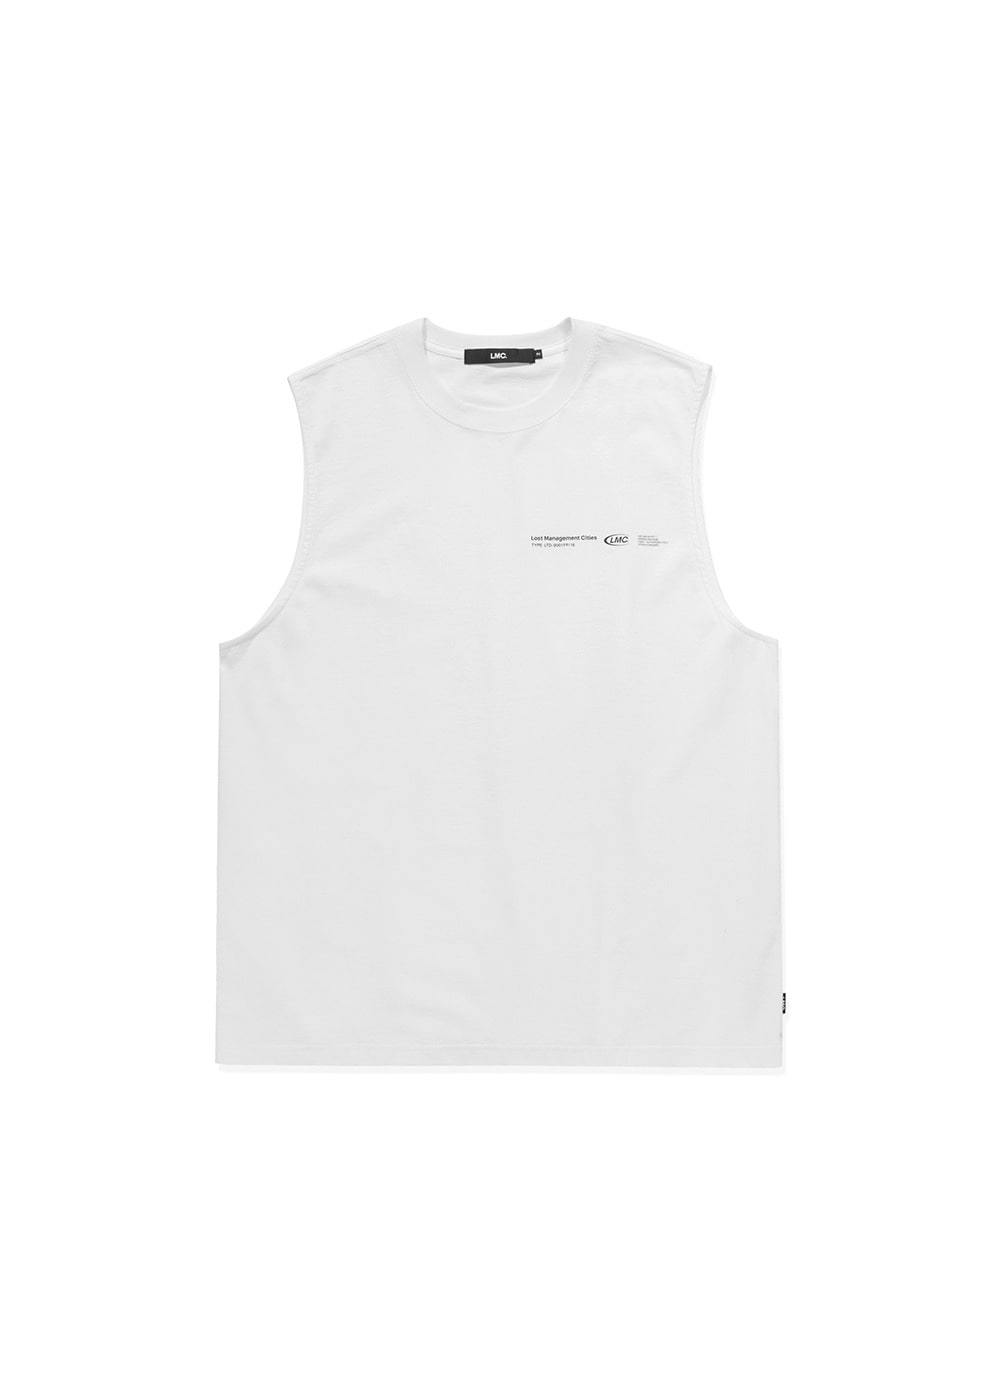 LMC LOGO PACK OVERSIZED SLEEVELESS white